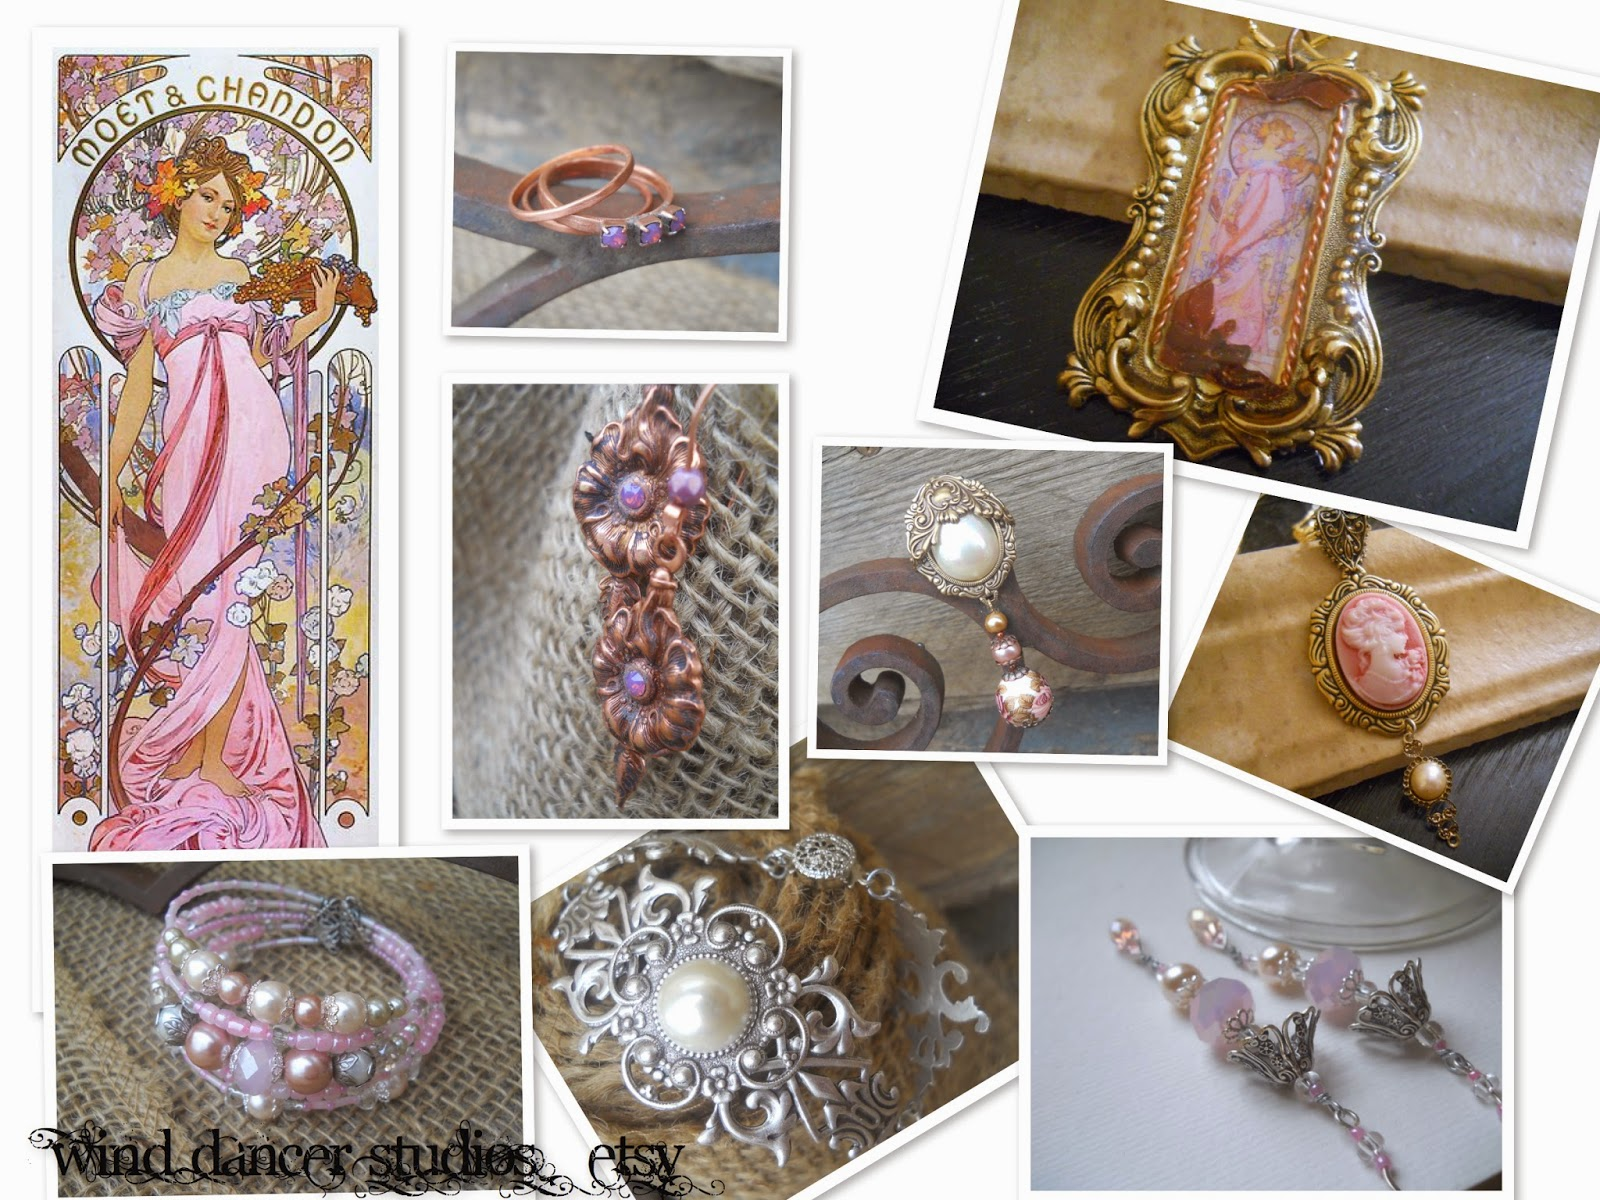 mucha's musings:  Pink Champagne collection, hand crafted jewelry by Wind Dancer Studios on Etsy